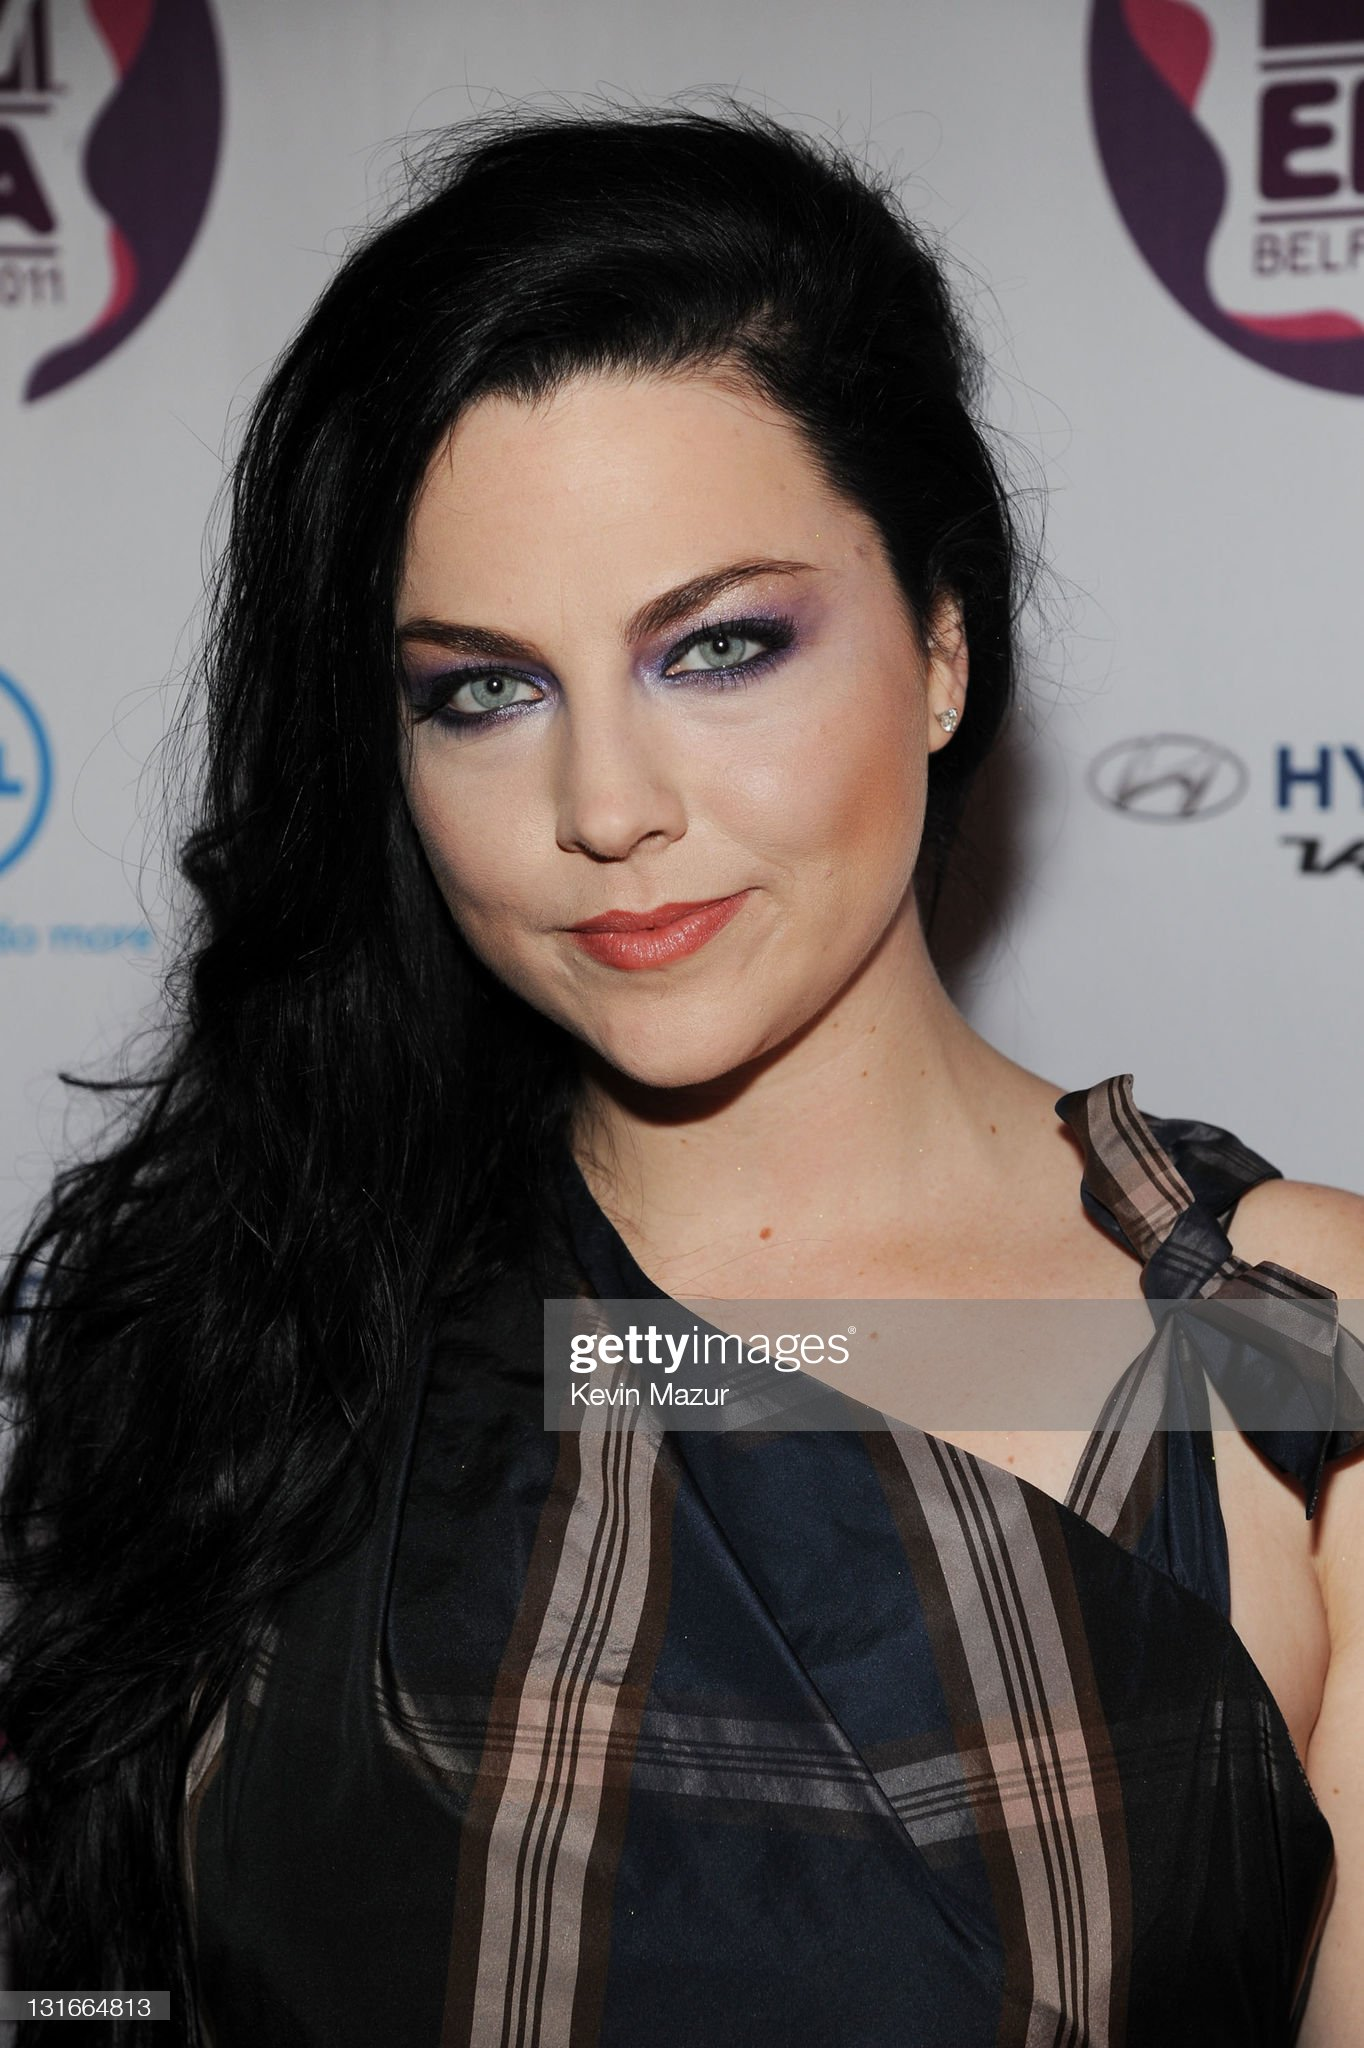 DEBATE sobre guapura de famosos y famosas - Página 5 Amy-lee-of-evanescence-attends-the-mtv-europe-music-awards-2011-at-picture-id131664813?s=2048x2048